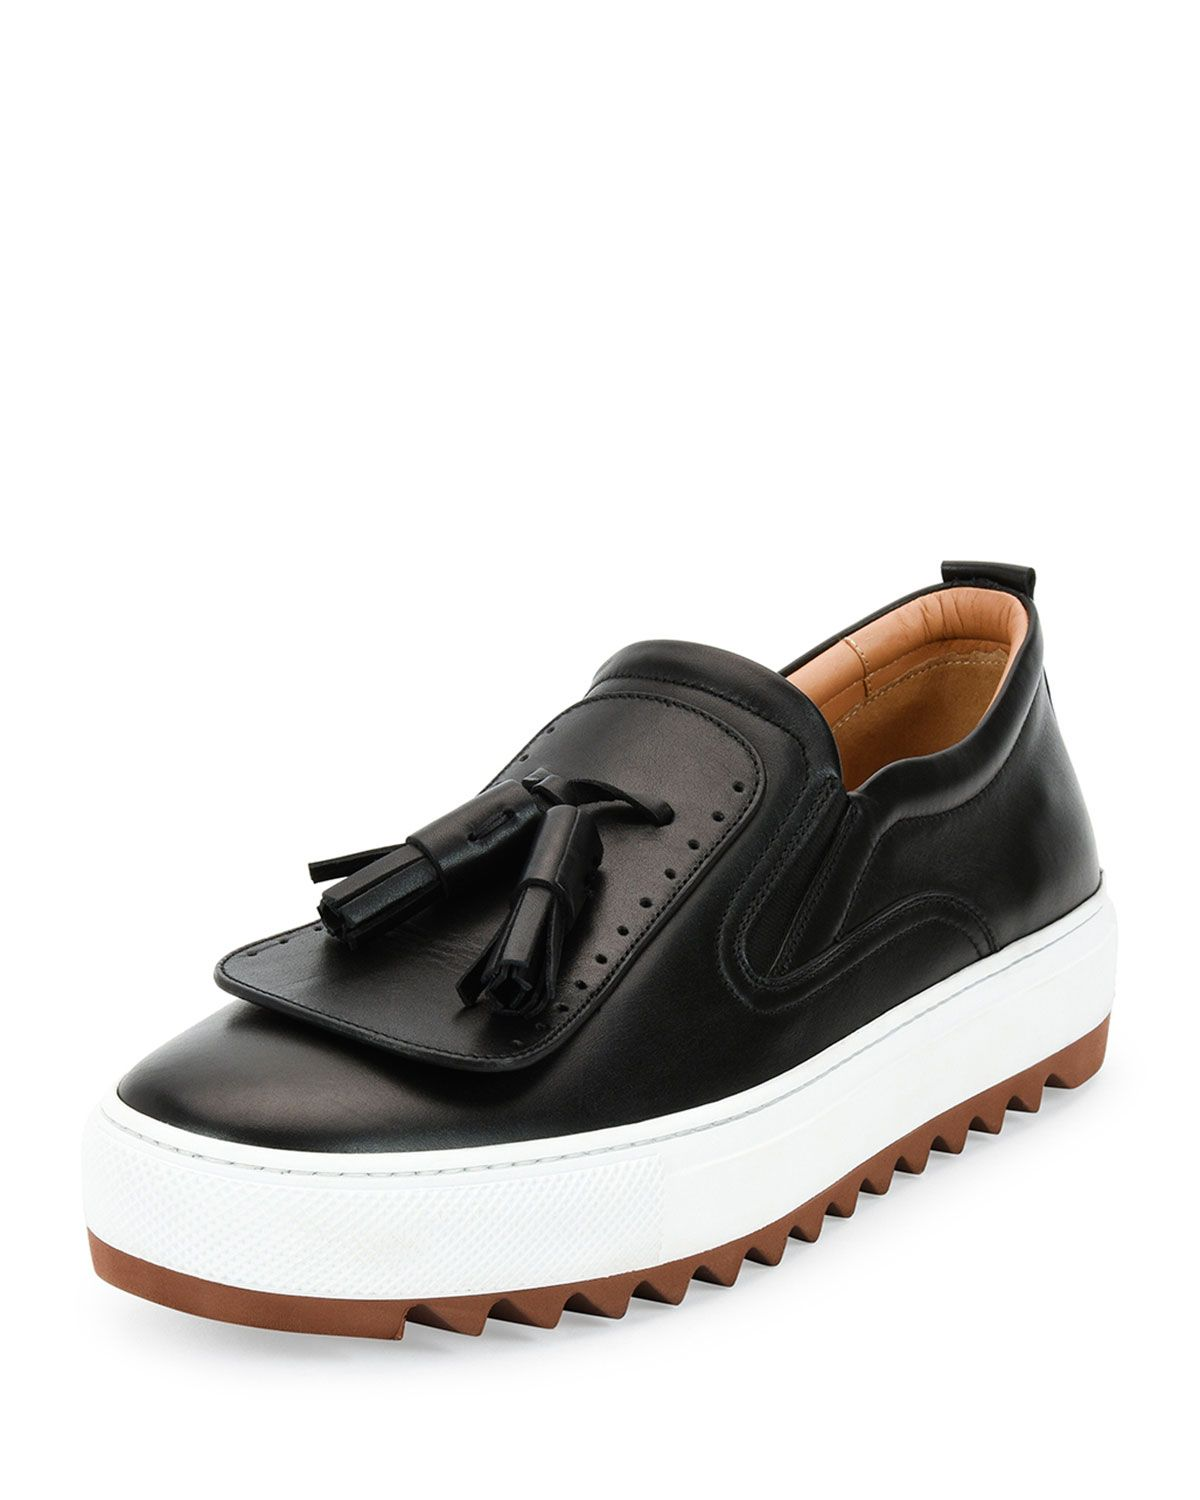 Lucca Calfskin Runway Sneaker with Oversized Tassels on Archival Sole c7fec4875